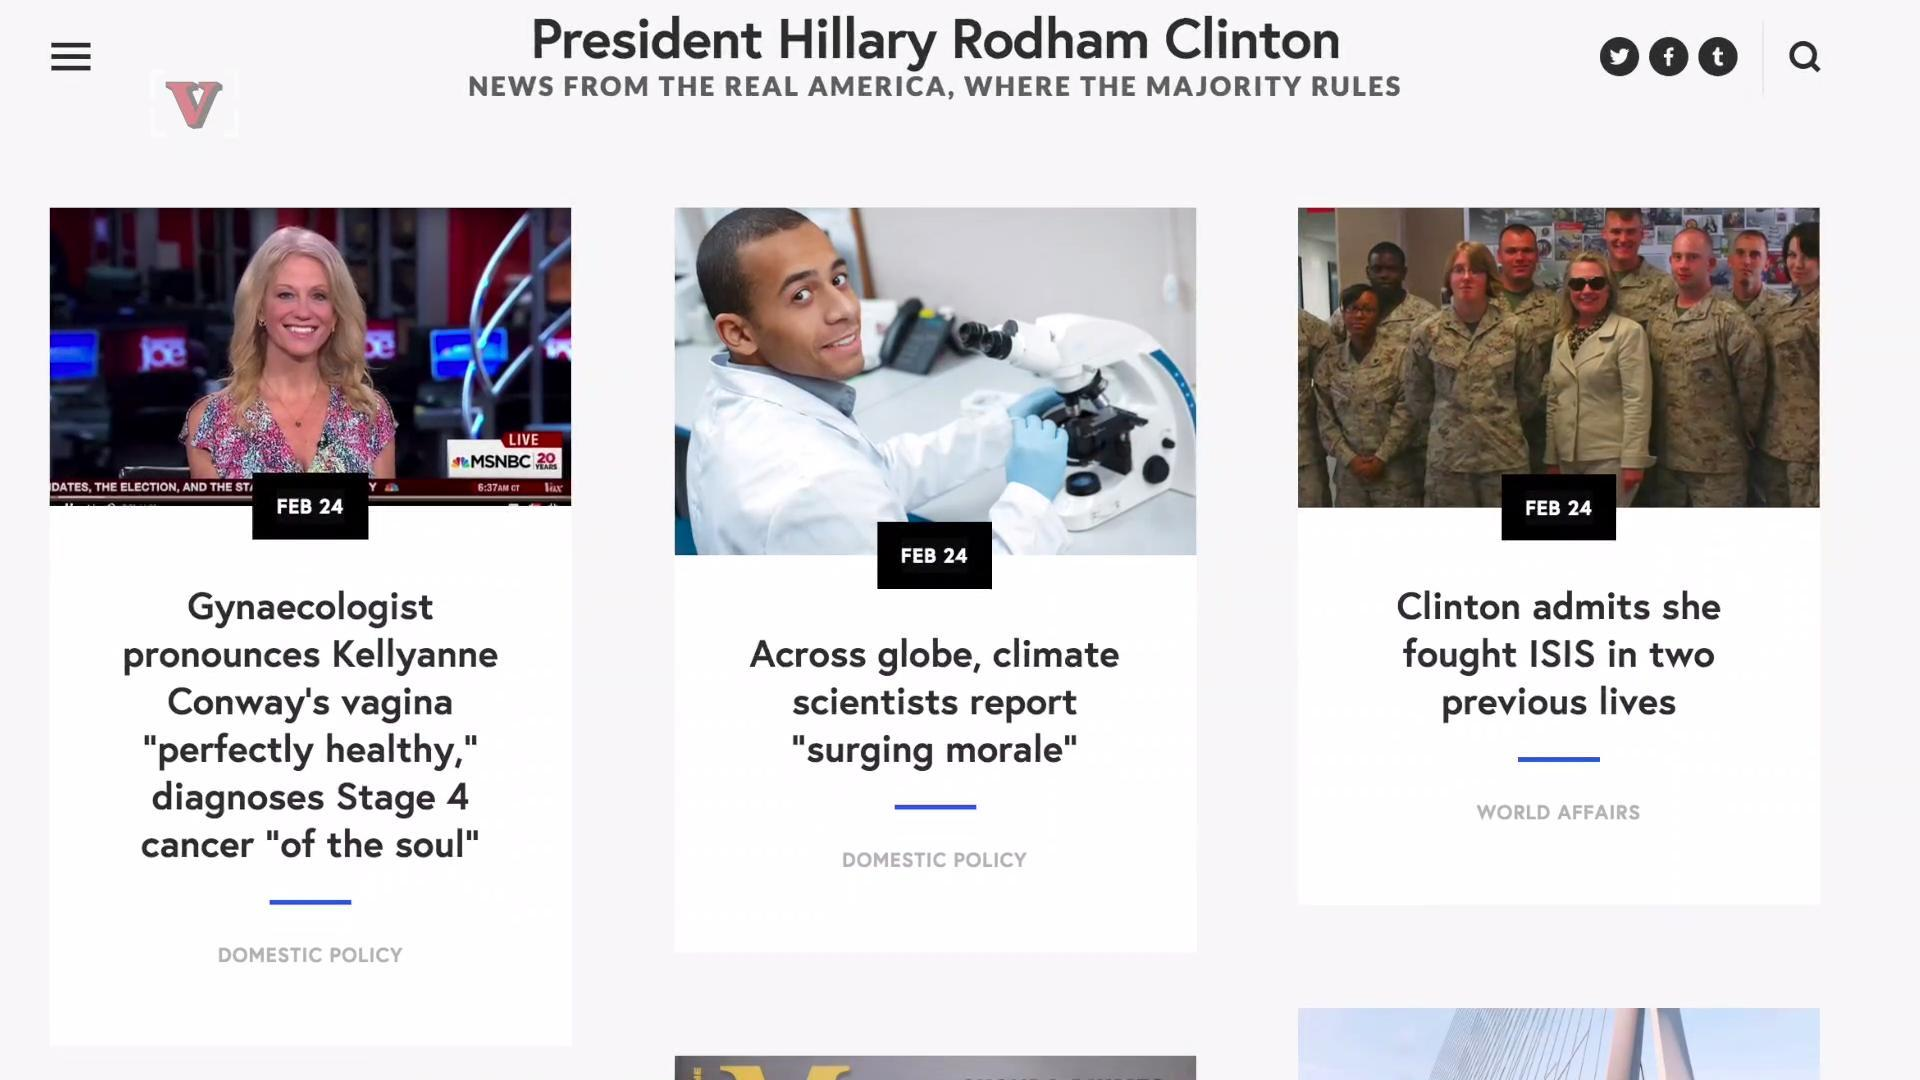 Website Imagines Alternate Universe Where Hillary Clinton is the President